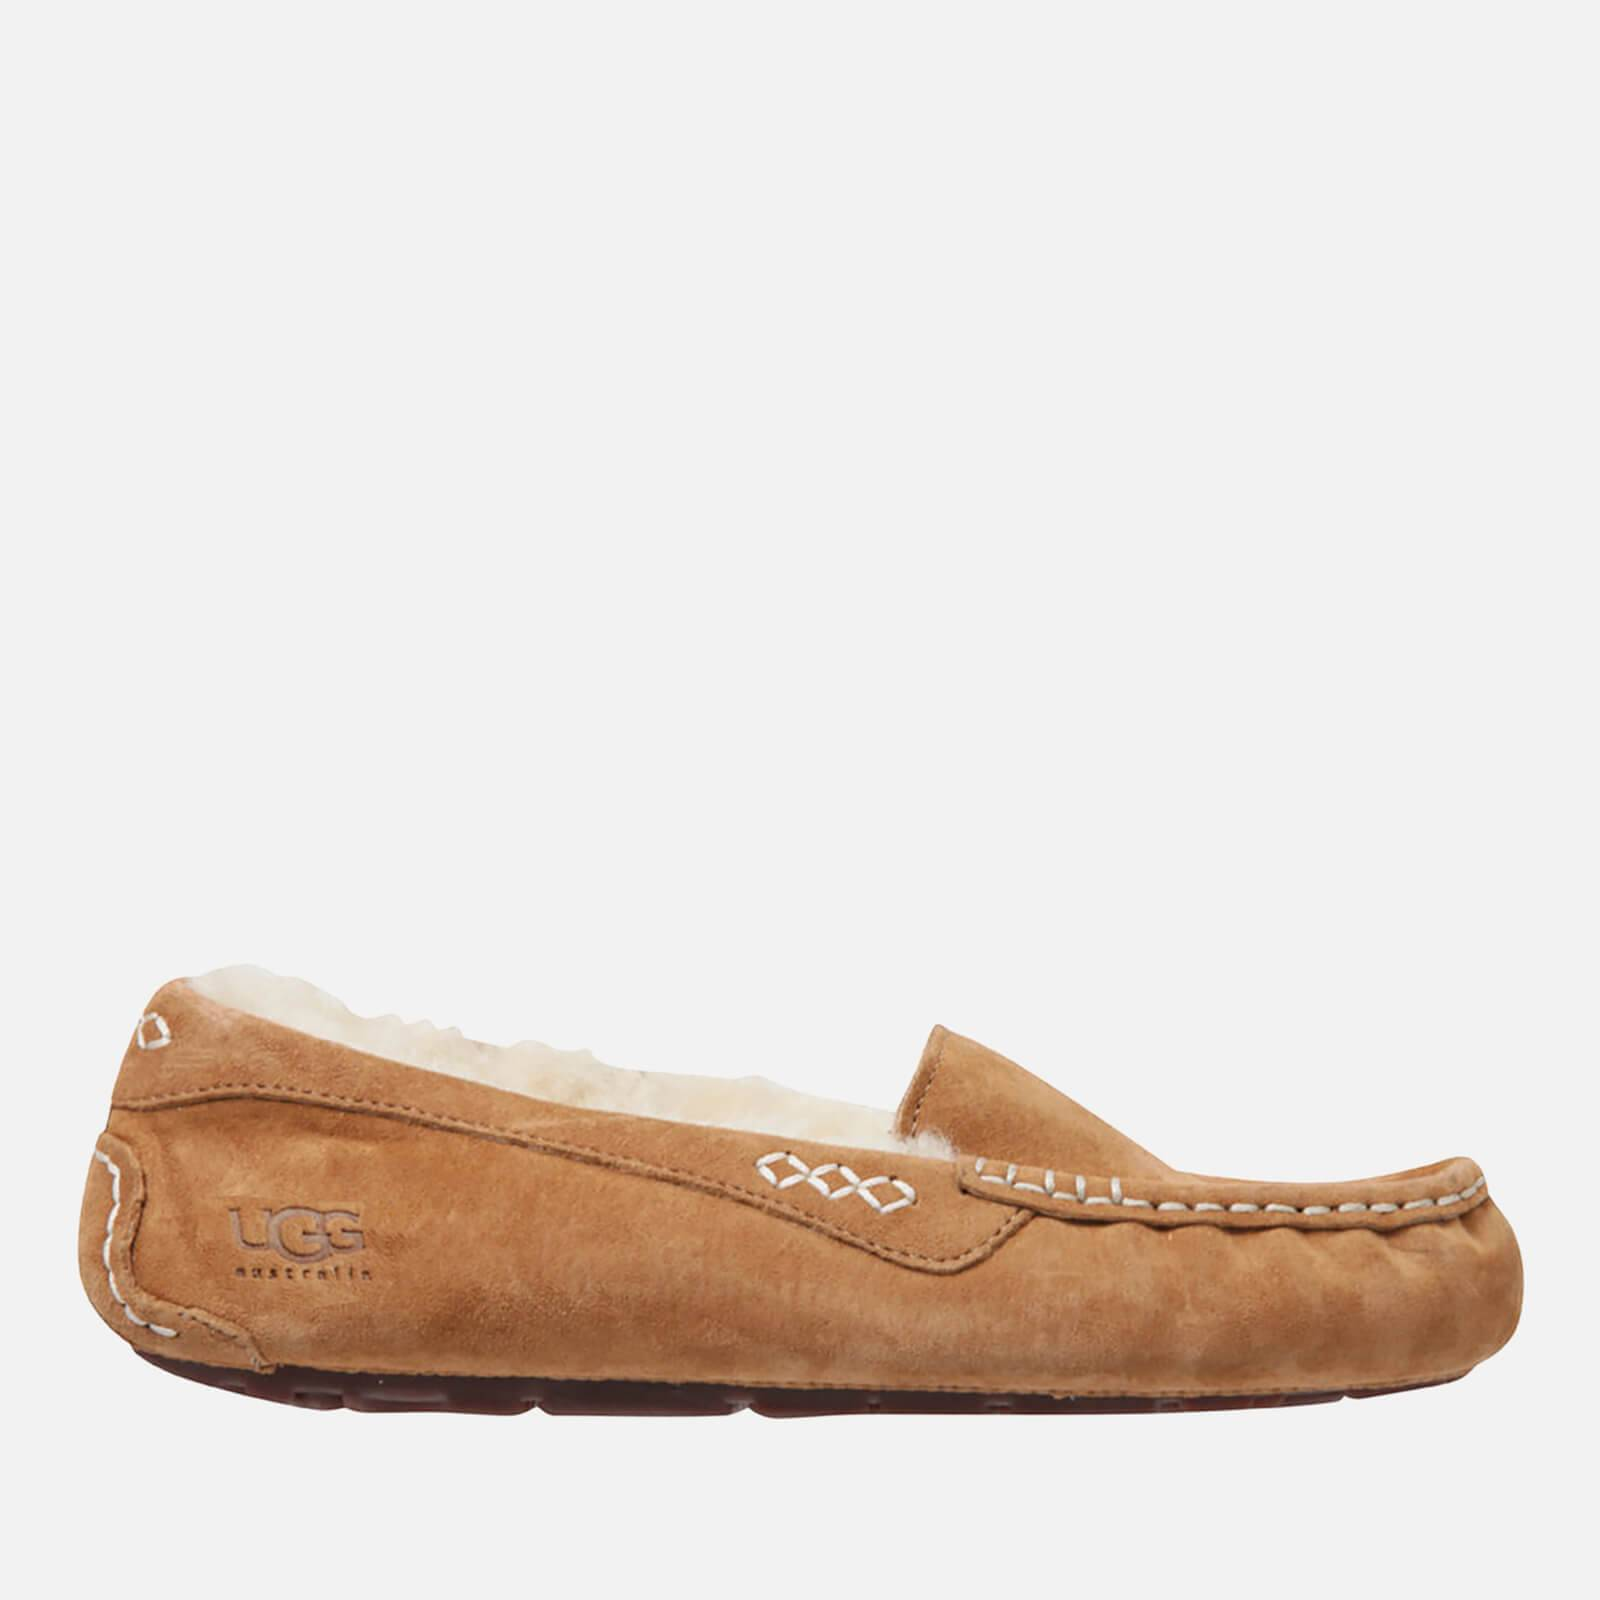 UGG Women's Ansley Moccasin Suede Slippers - Chestnut - UK 7